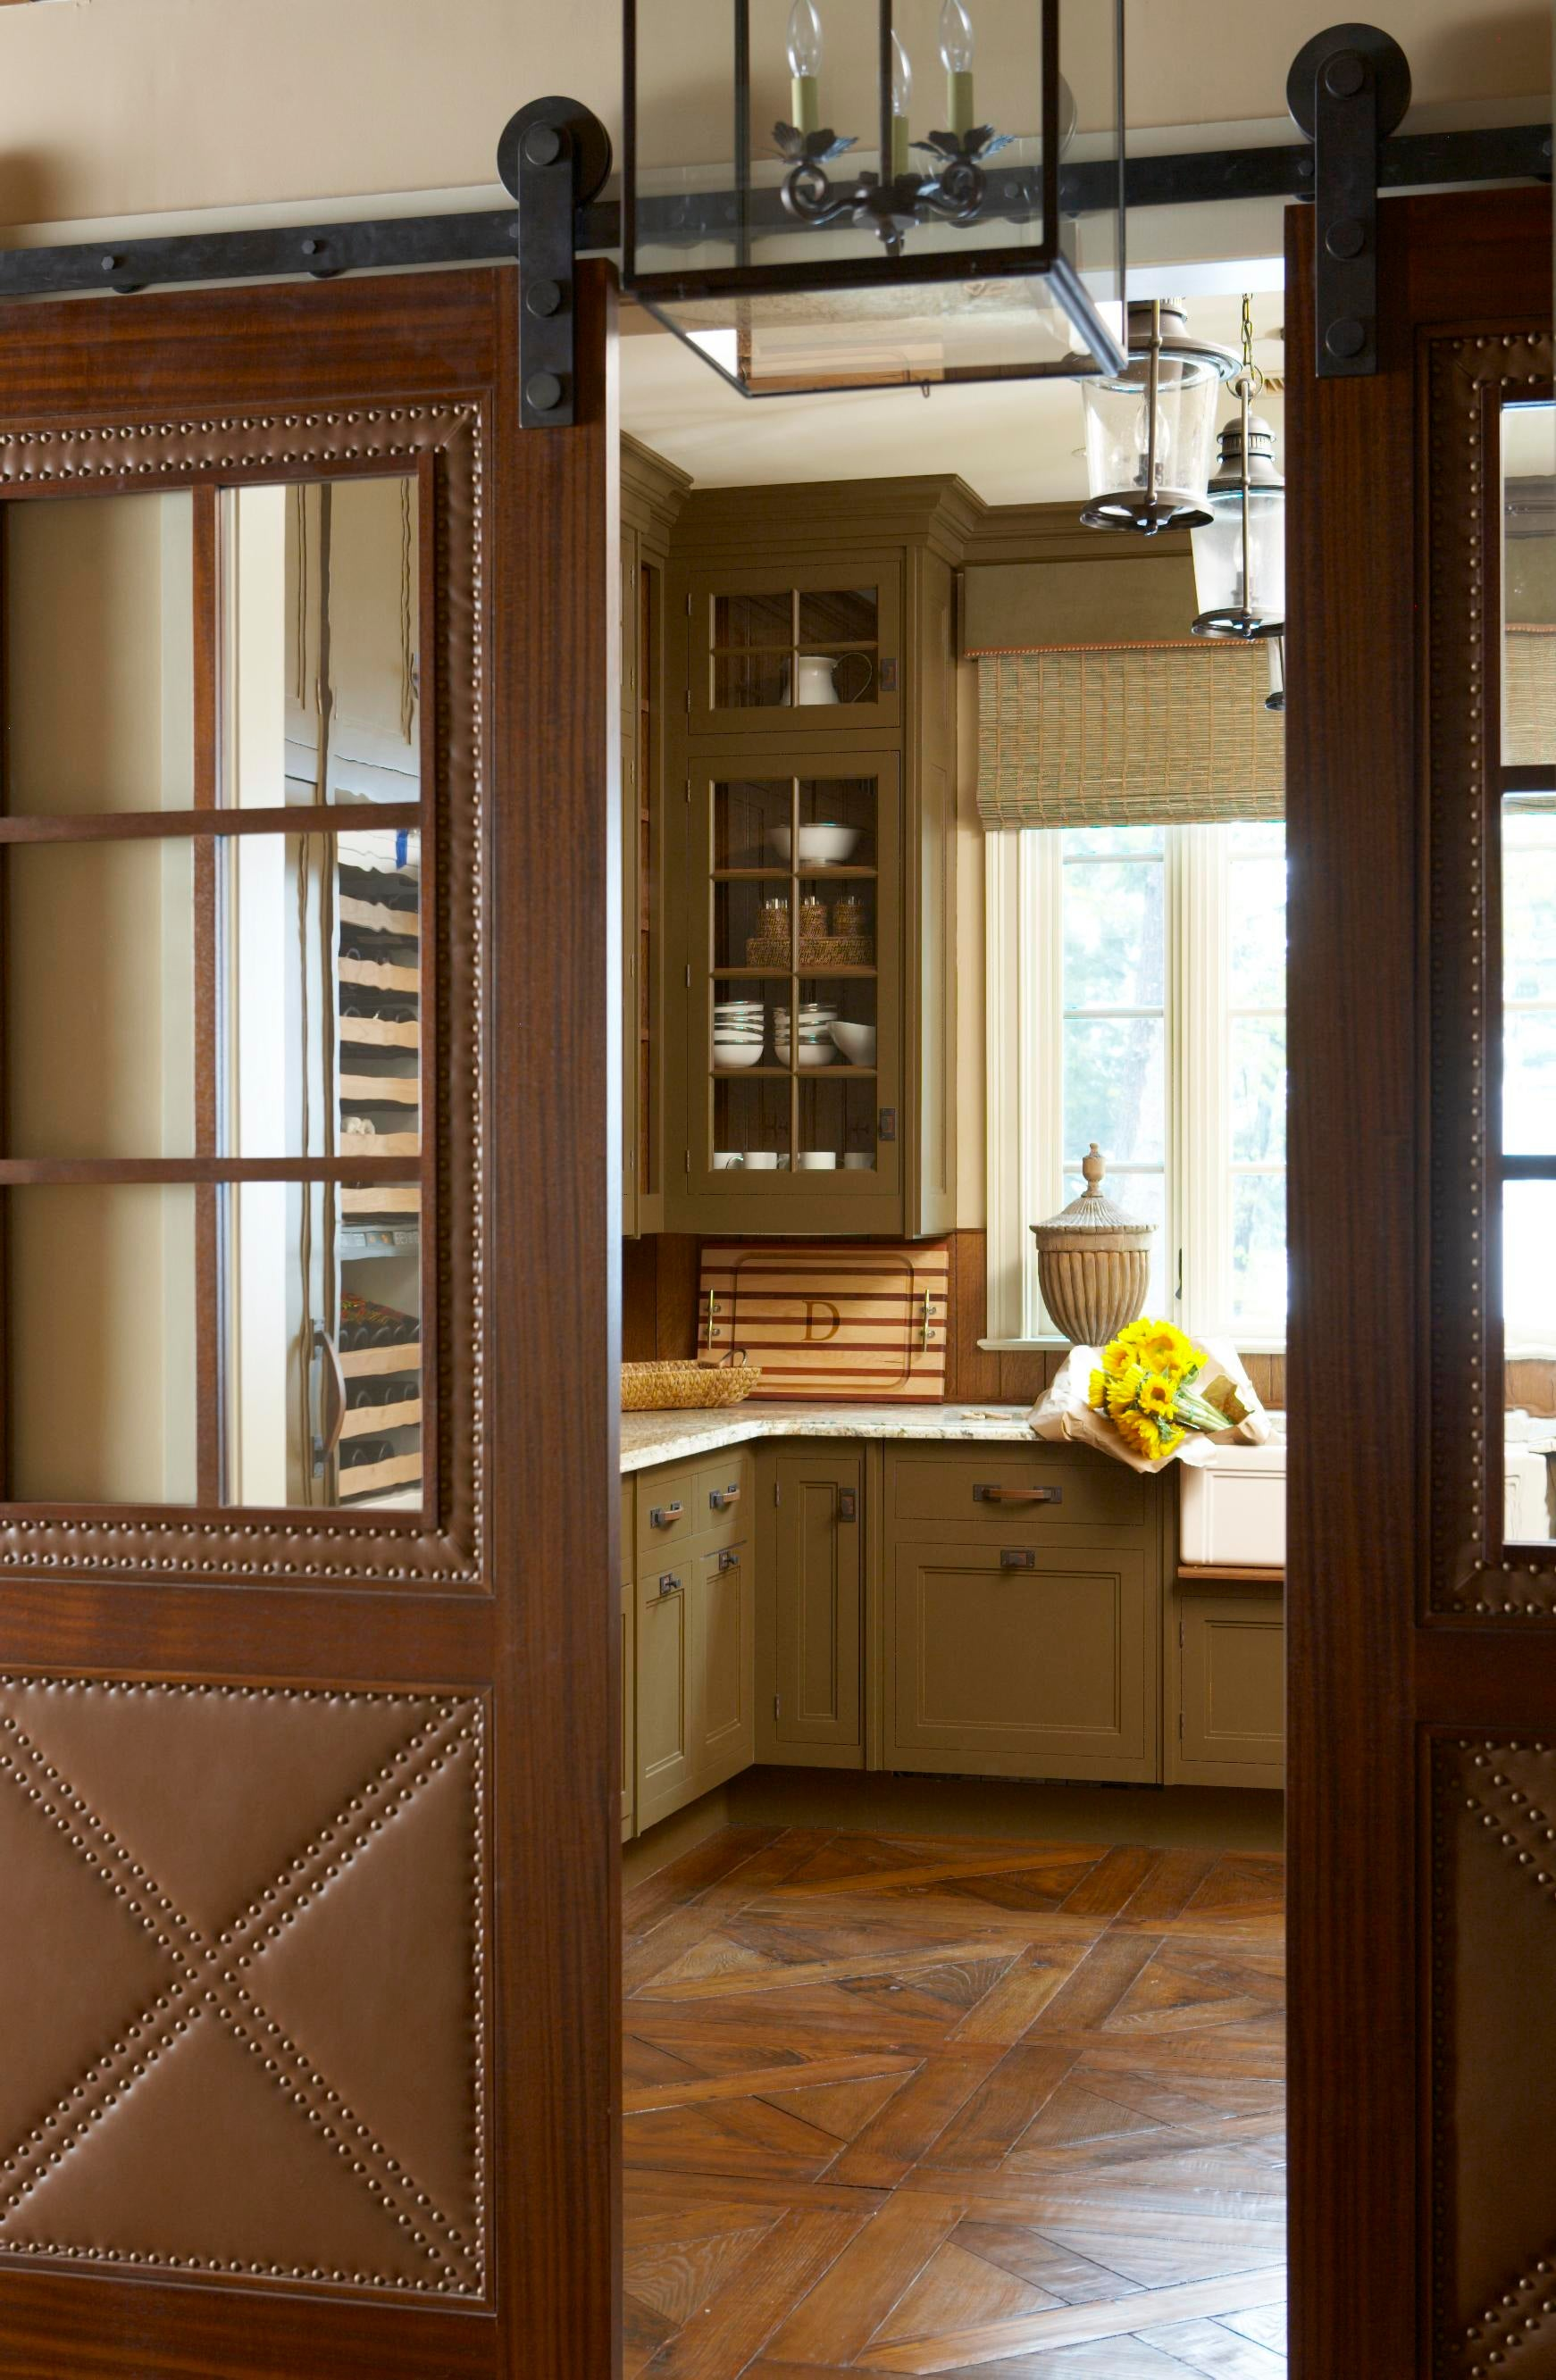 Lake House Kitchen Kitchen Contemporary TraditionalNeoclassical  Transitional By Rinfret Limited Interior Design U0026 Decoration LLC